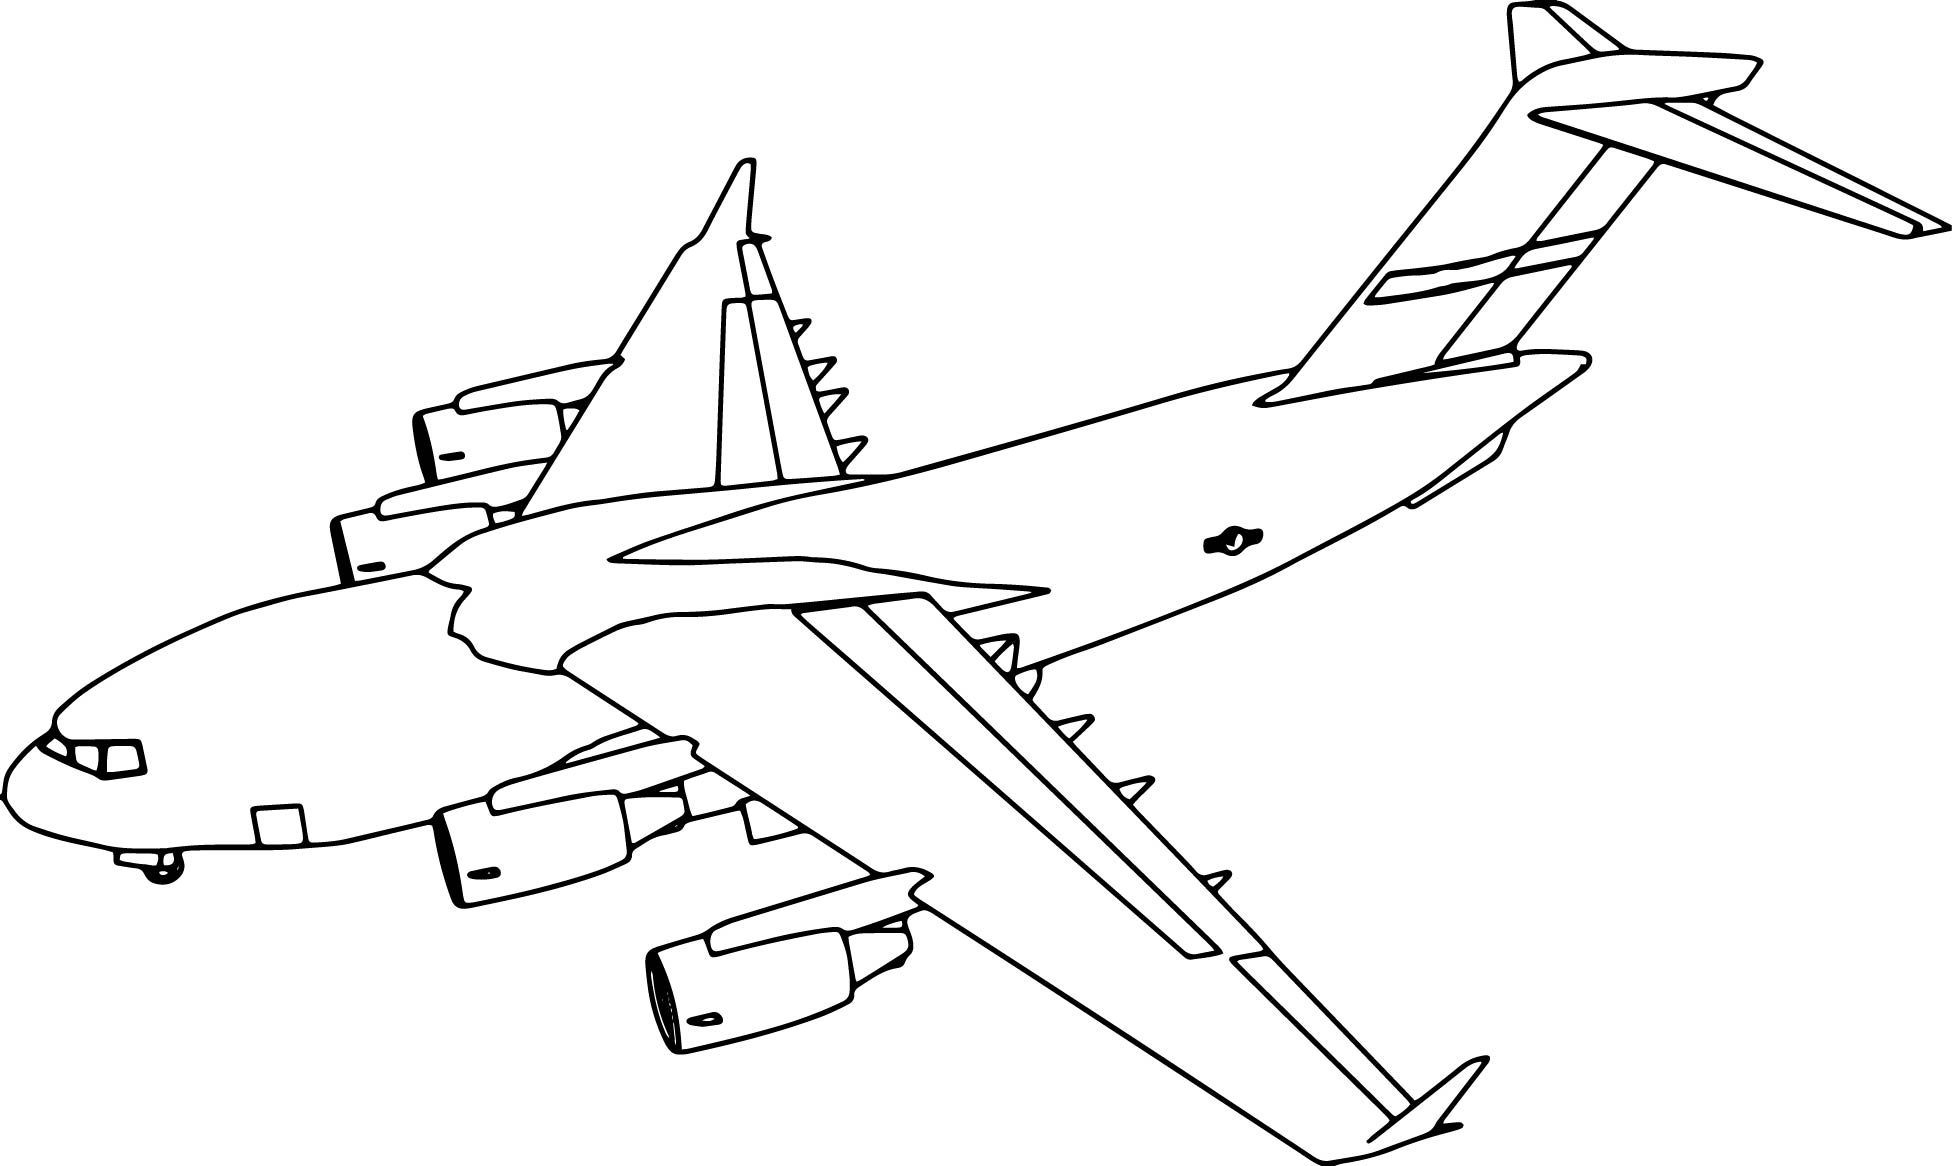 plane coloring pages - c17 plane coloring page